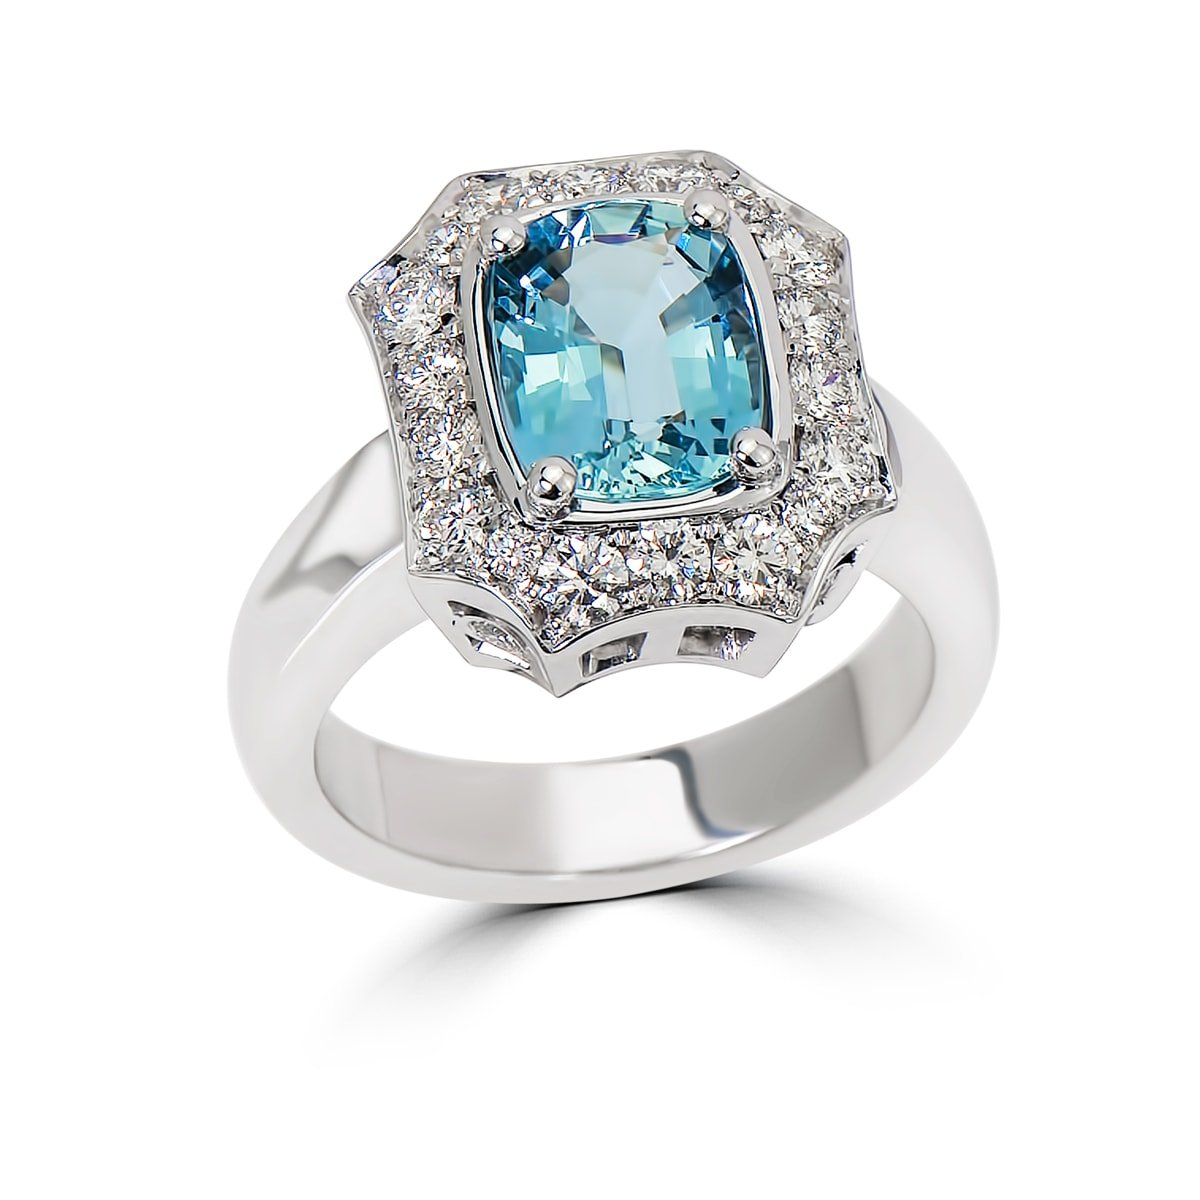 White Gold Engagement Ring with Sapphire and Diamonds